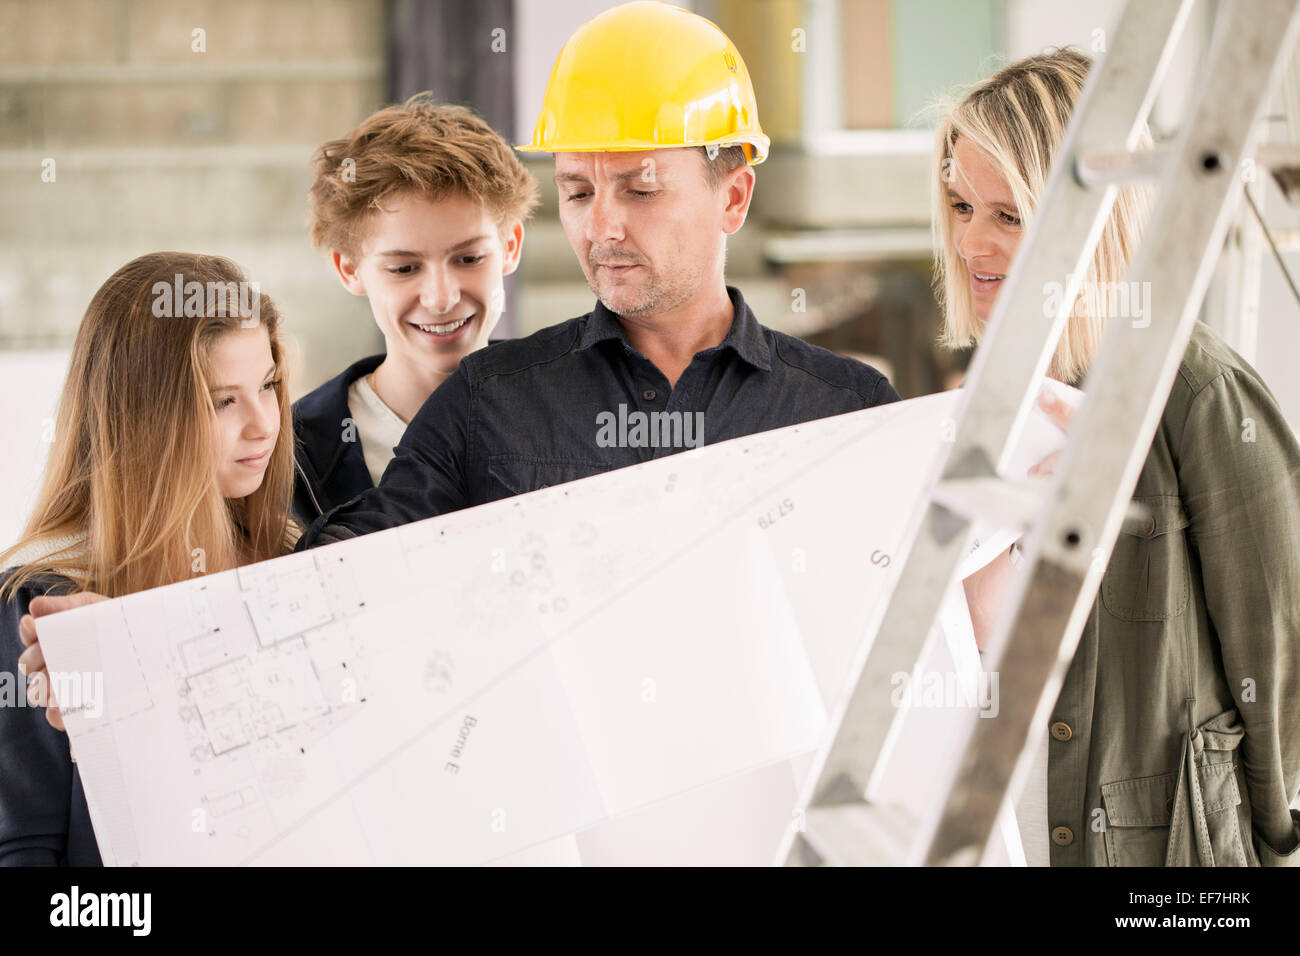 Engineer showing blueprint to family - Stock Image